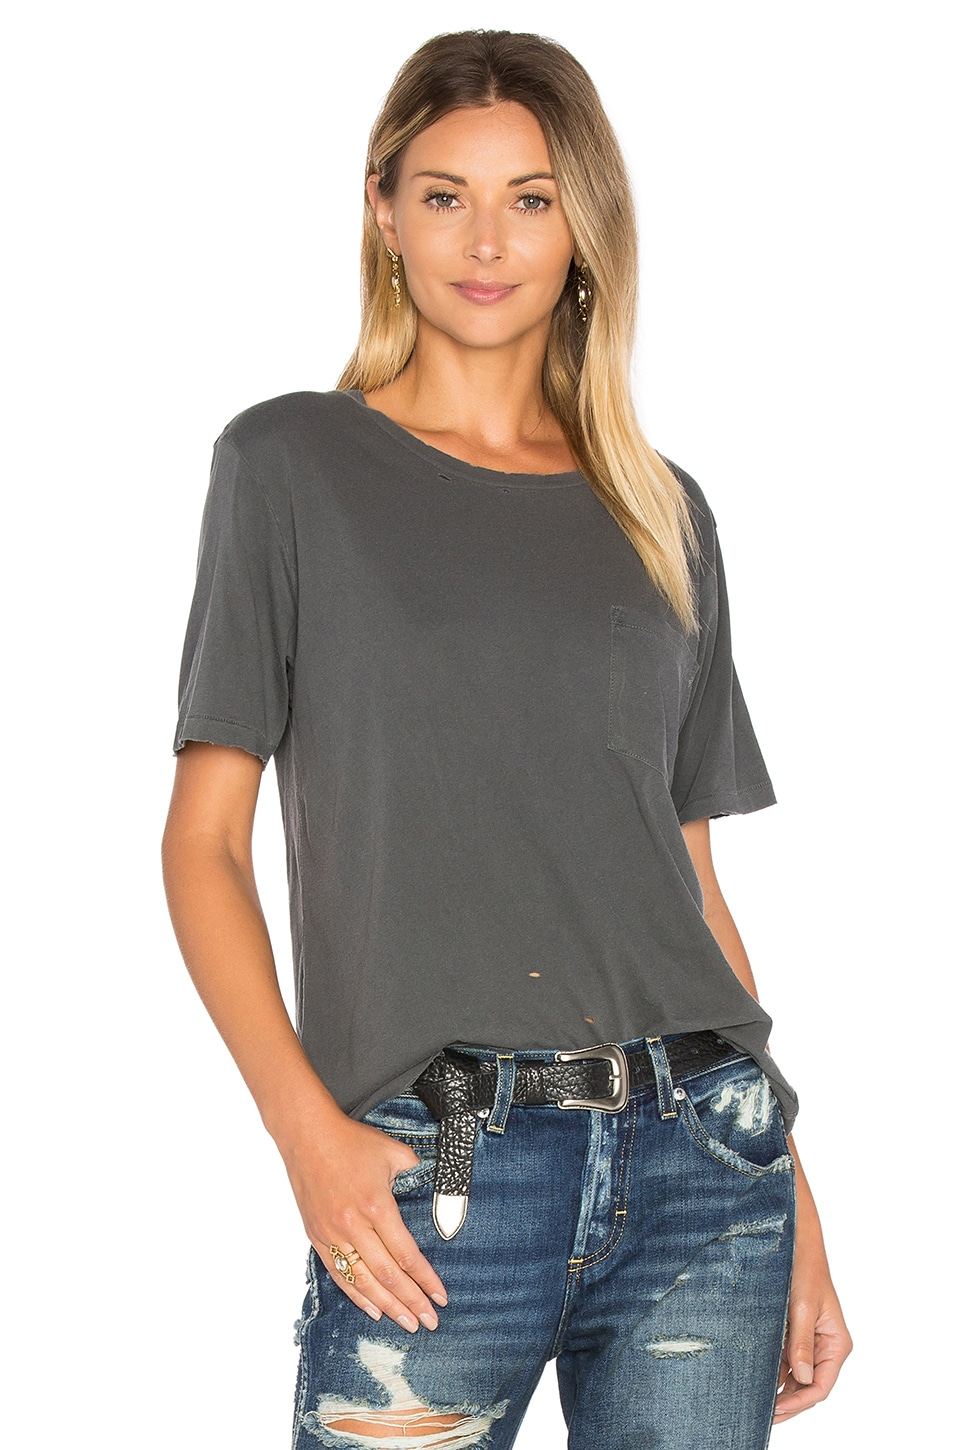 Tomboy Pocket Tee by Amo